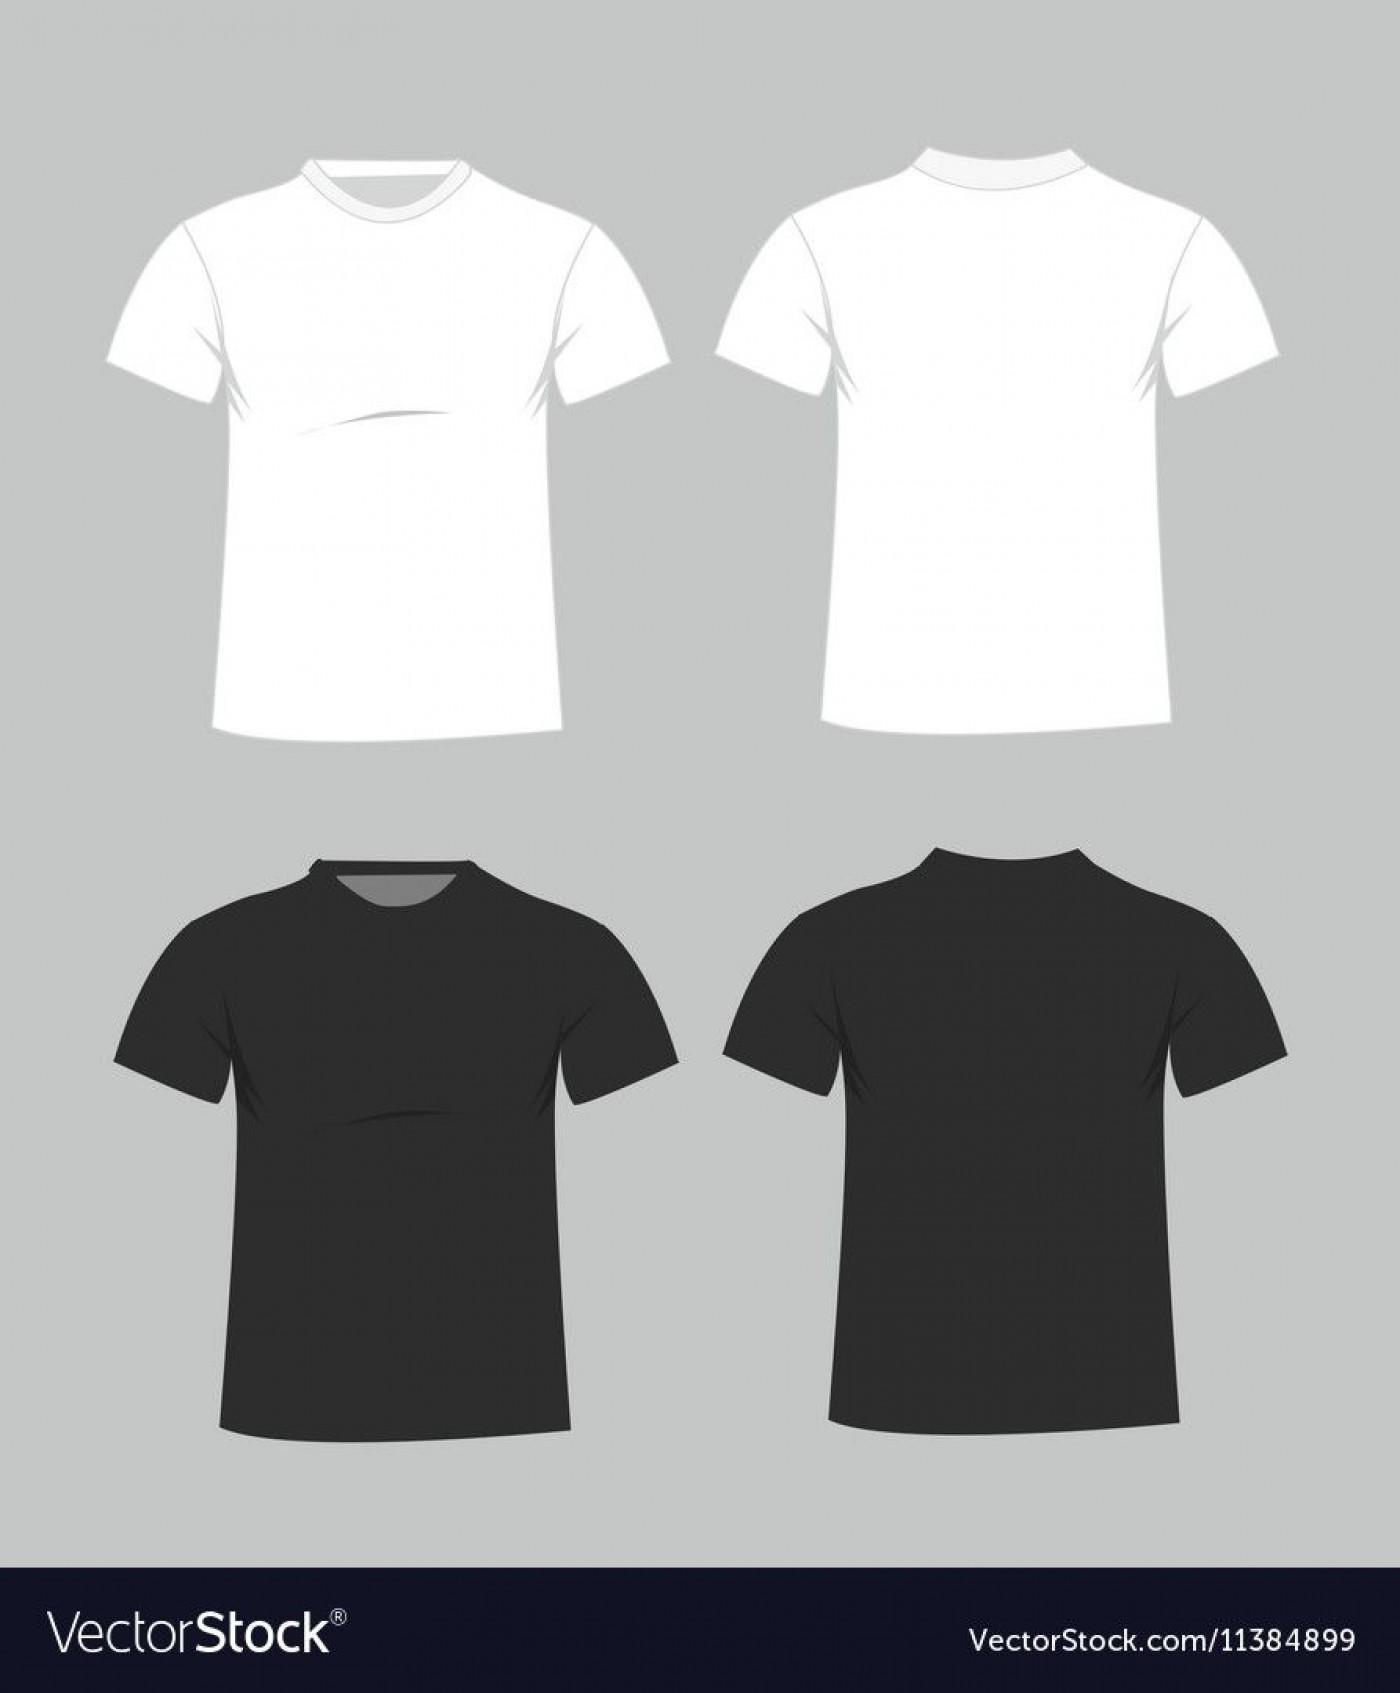 005 Imposing T Shirt Template Free High Resolution  Design Psd Download Illustrator1400